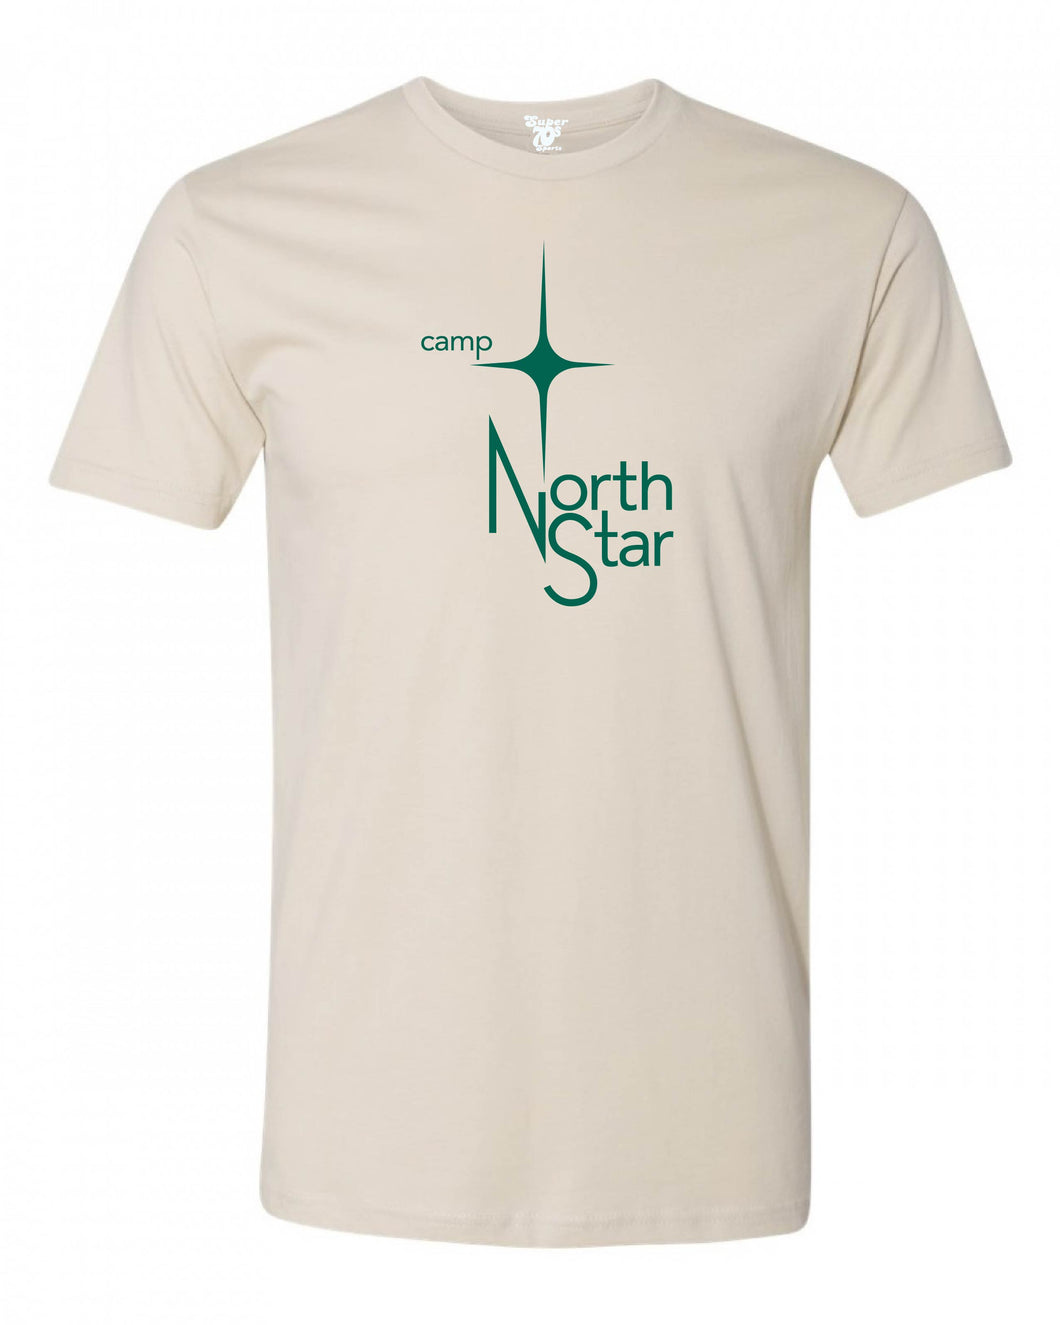 Camp North Star Tee